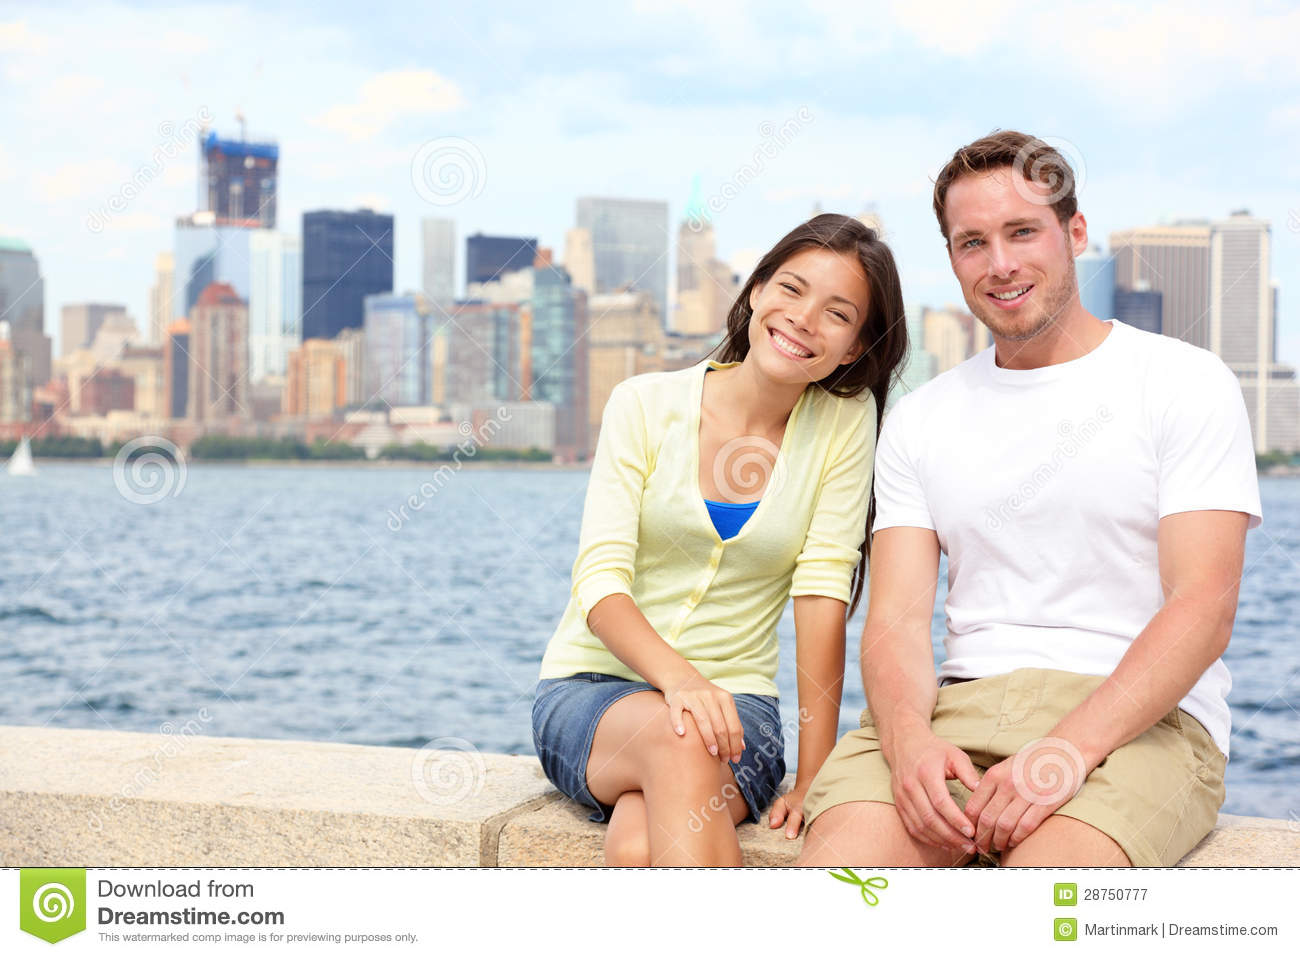 Top dating sites in new york